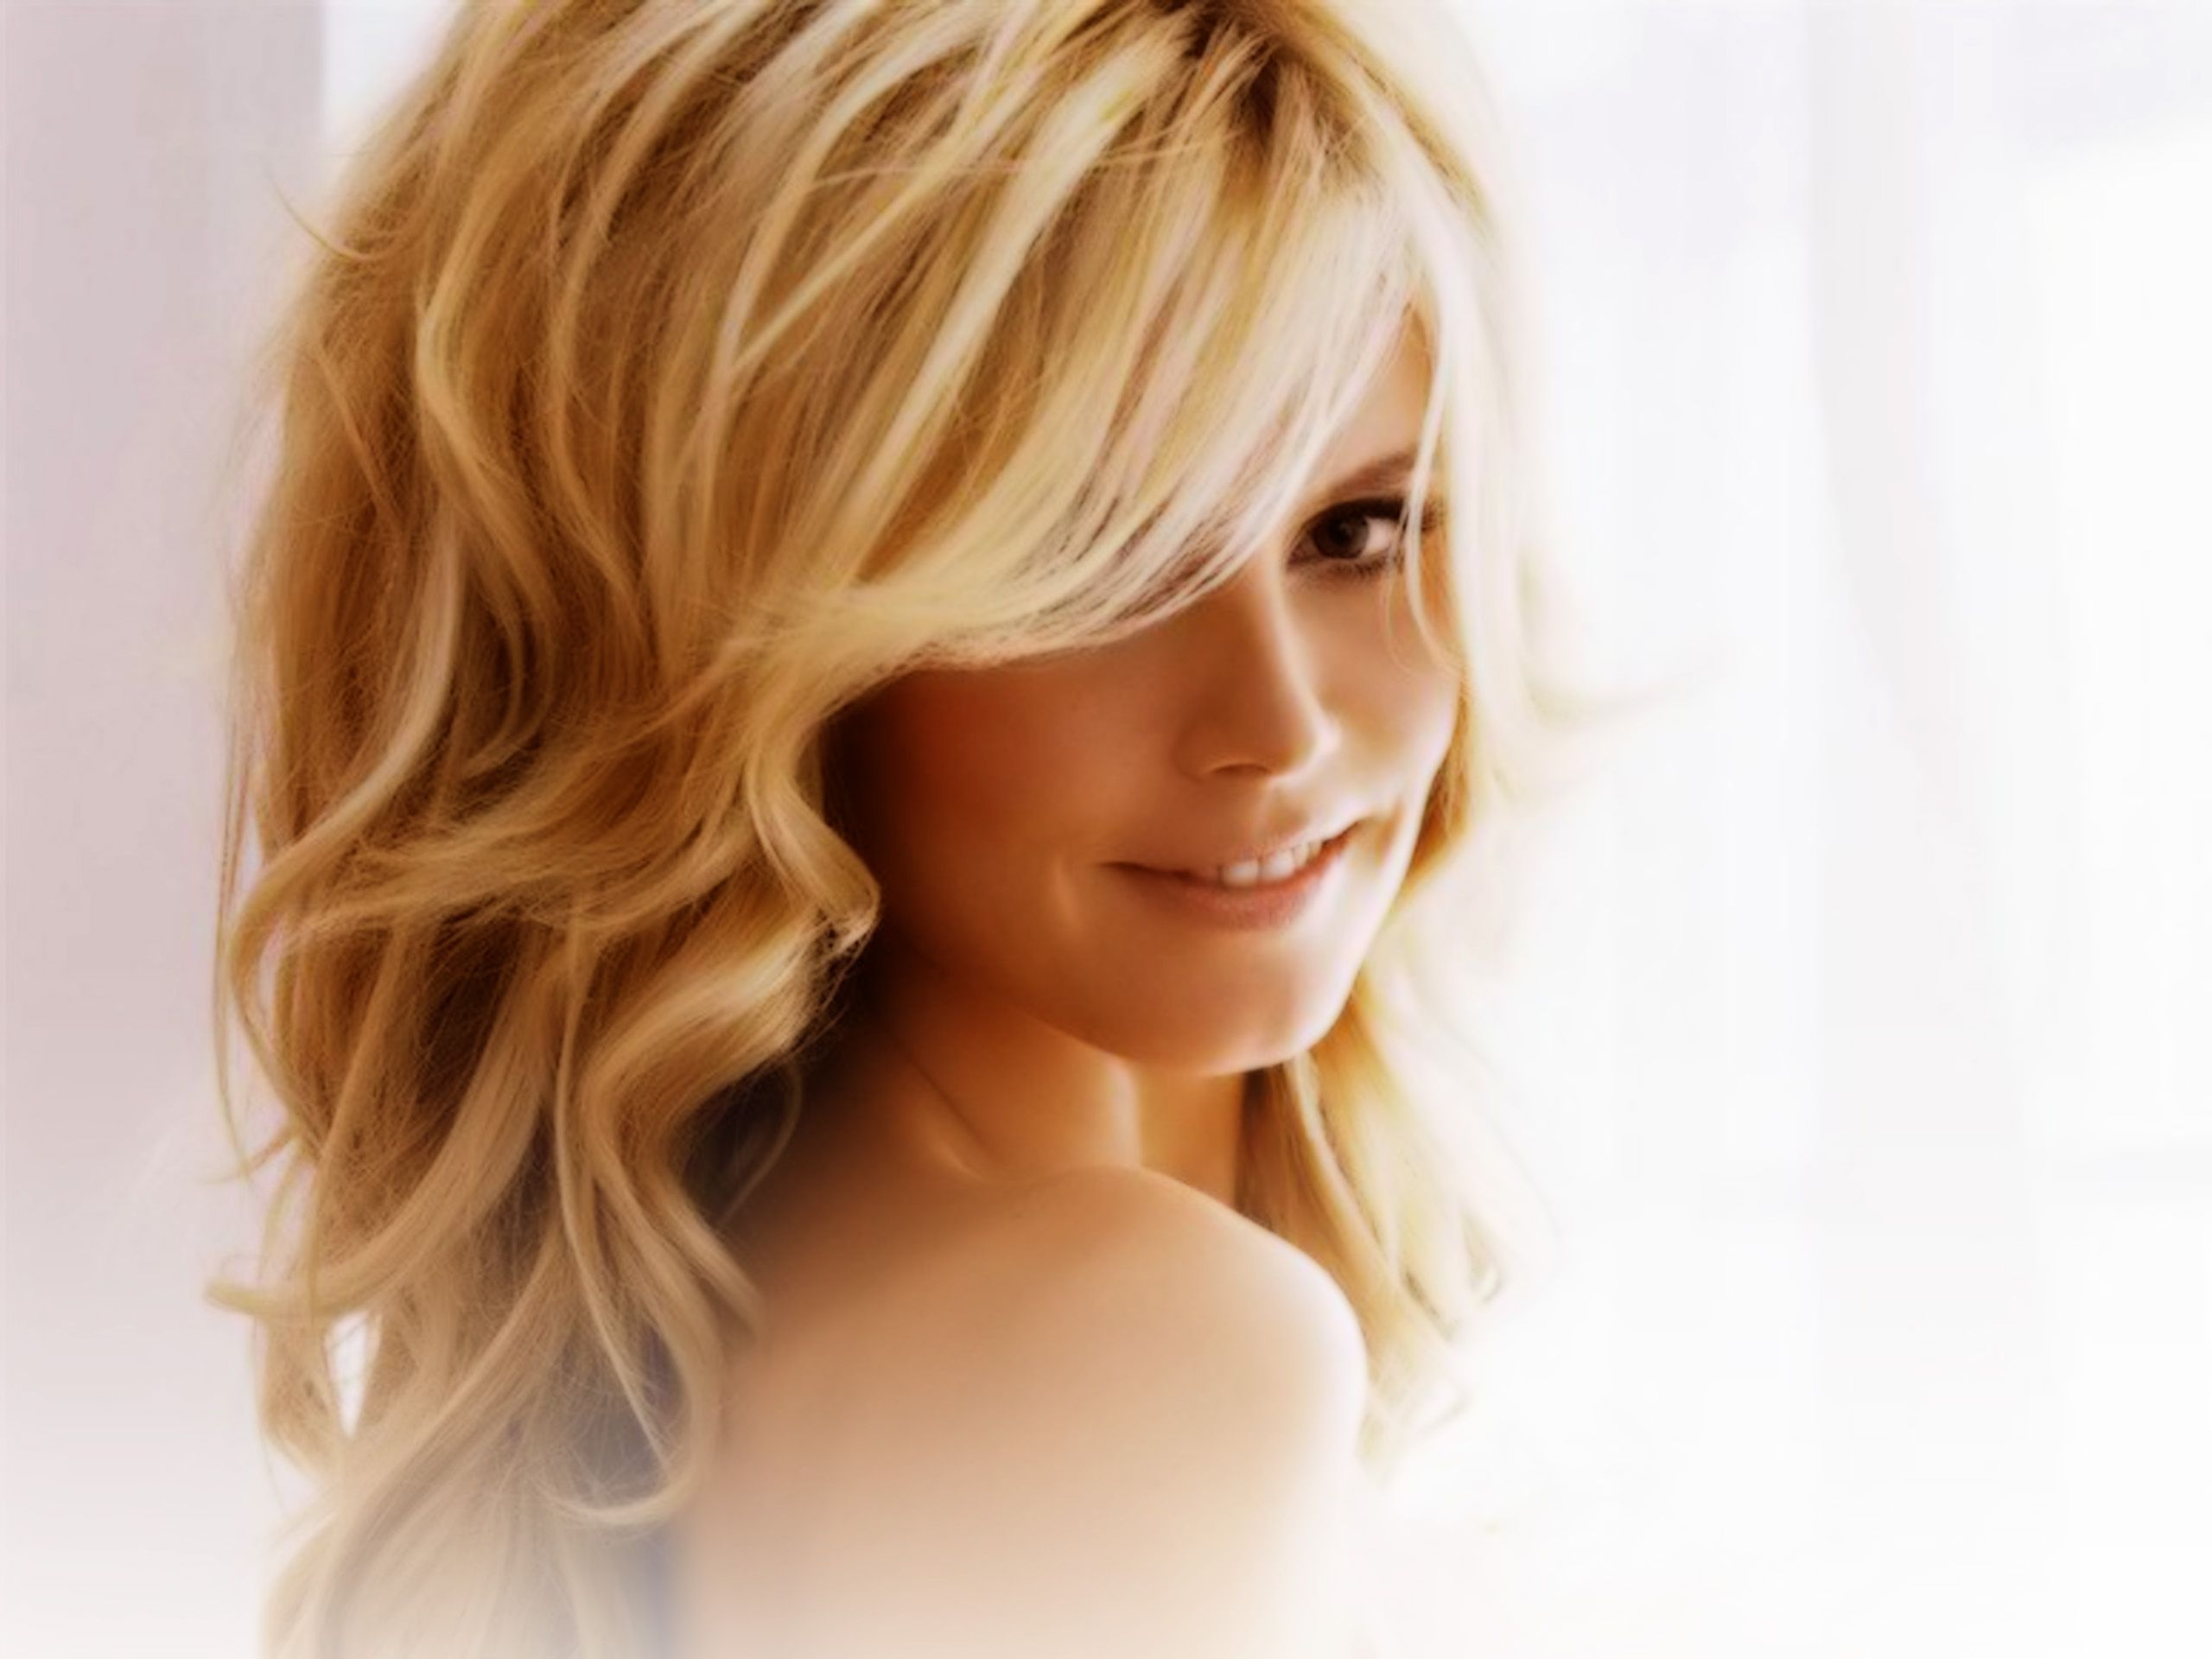 Heidi Klum Hair Styles: Heidi Klum Wallpapers